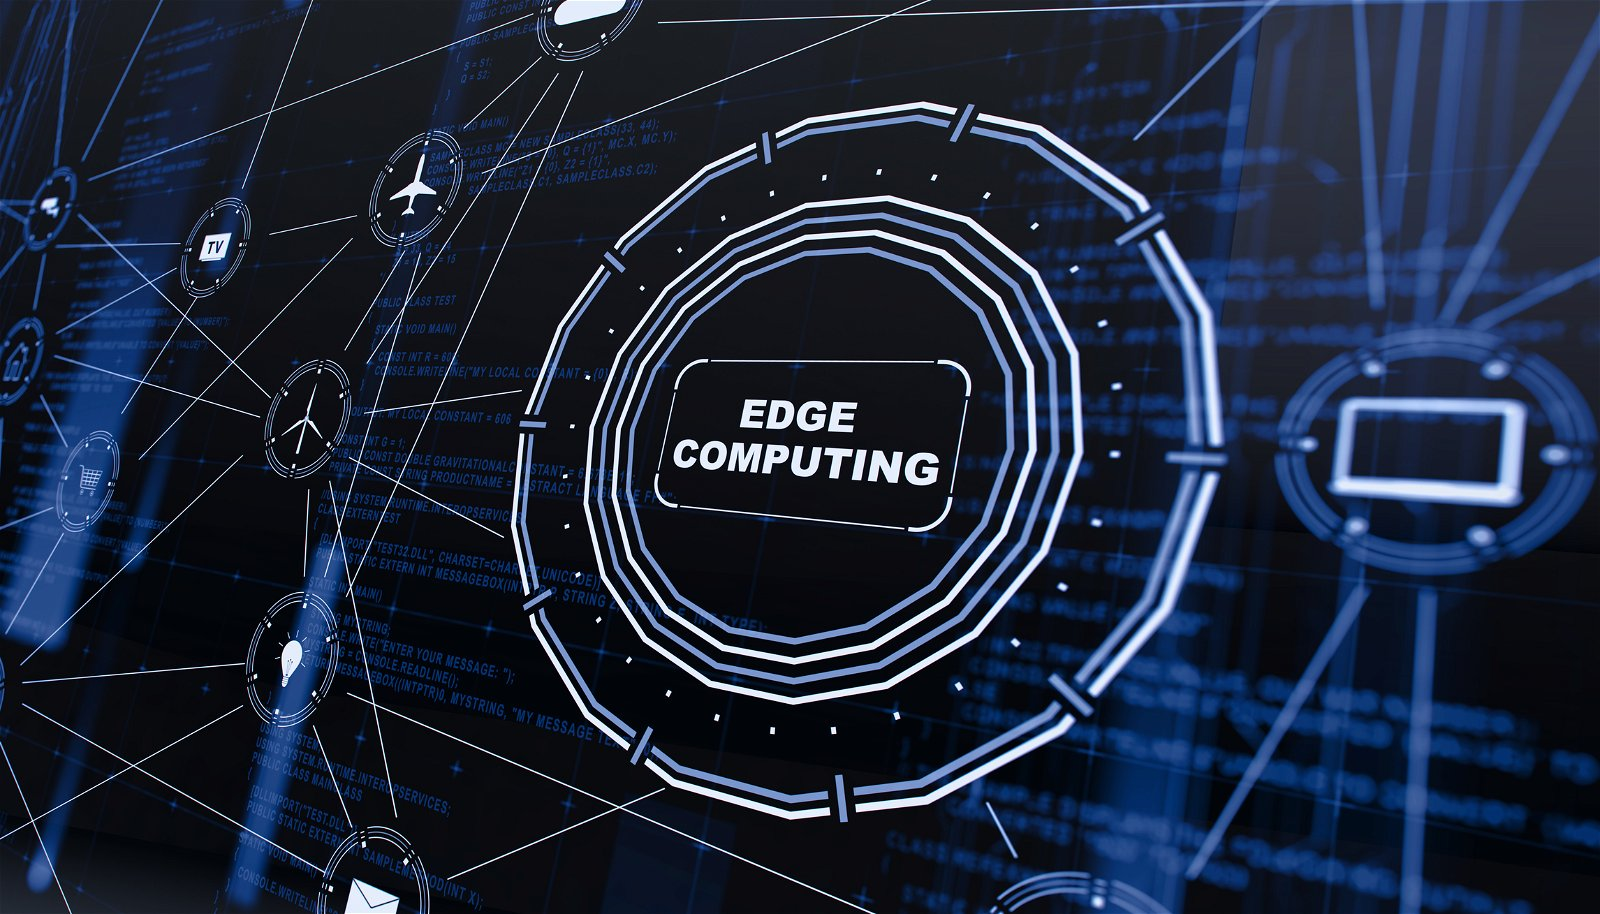 5G and Edge Computing Ecosystem is Modifying the Big Three Industries